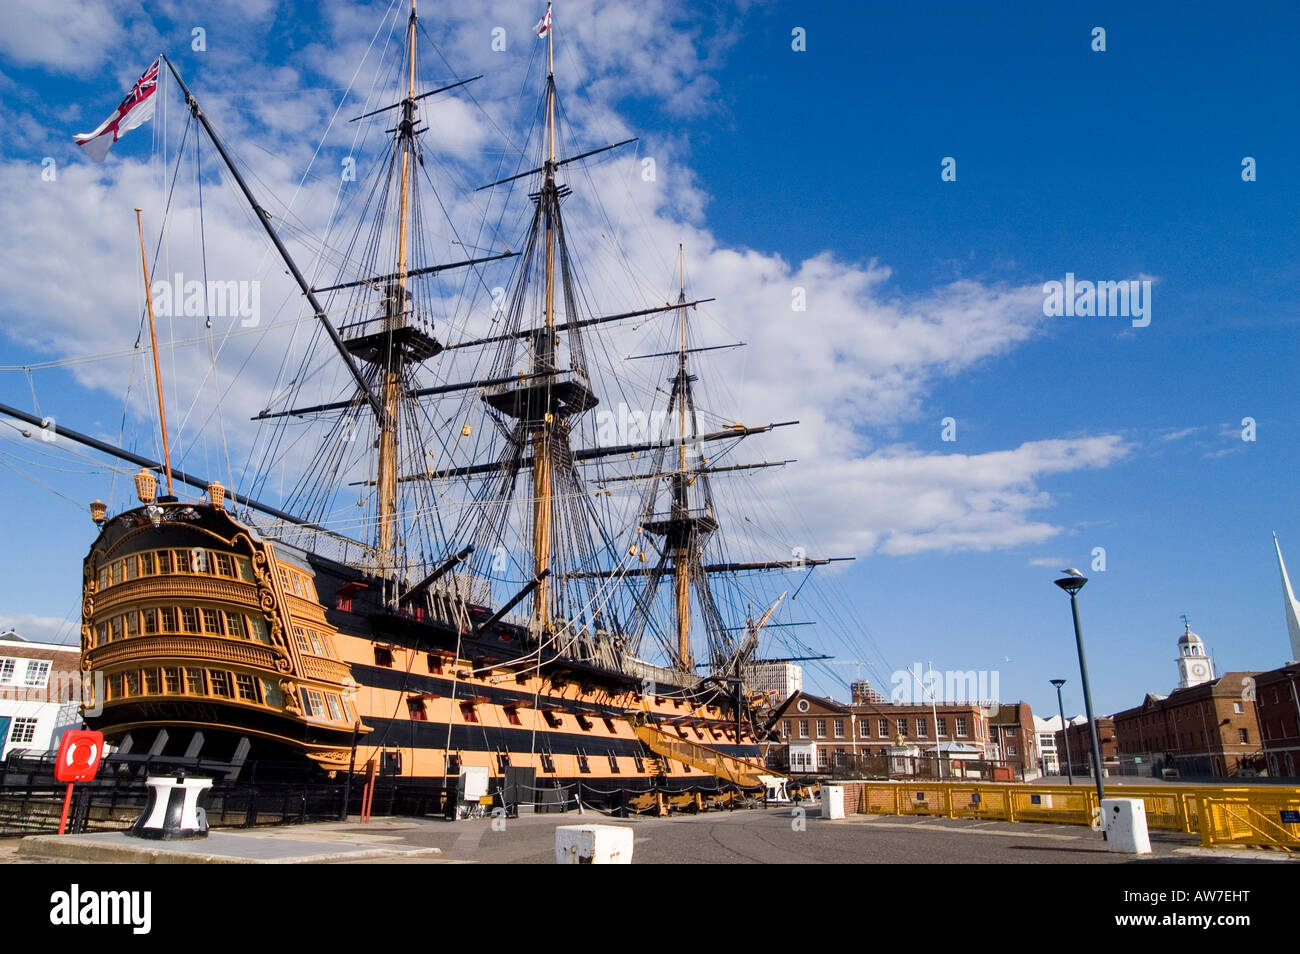 HMS Victory and her surroundings in the Historic Dockyard Portsmouth. One of the most important and famous ships - Stock Image